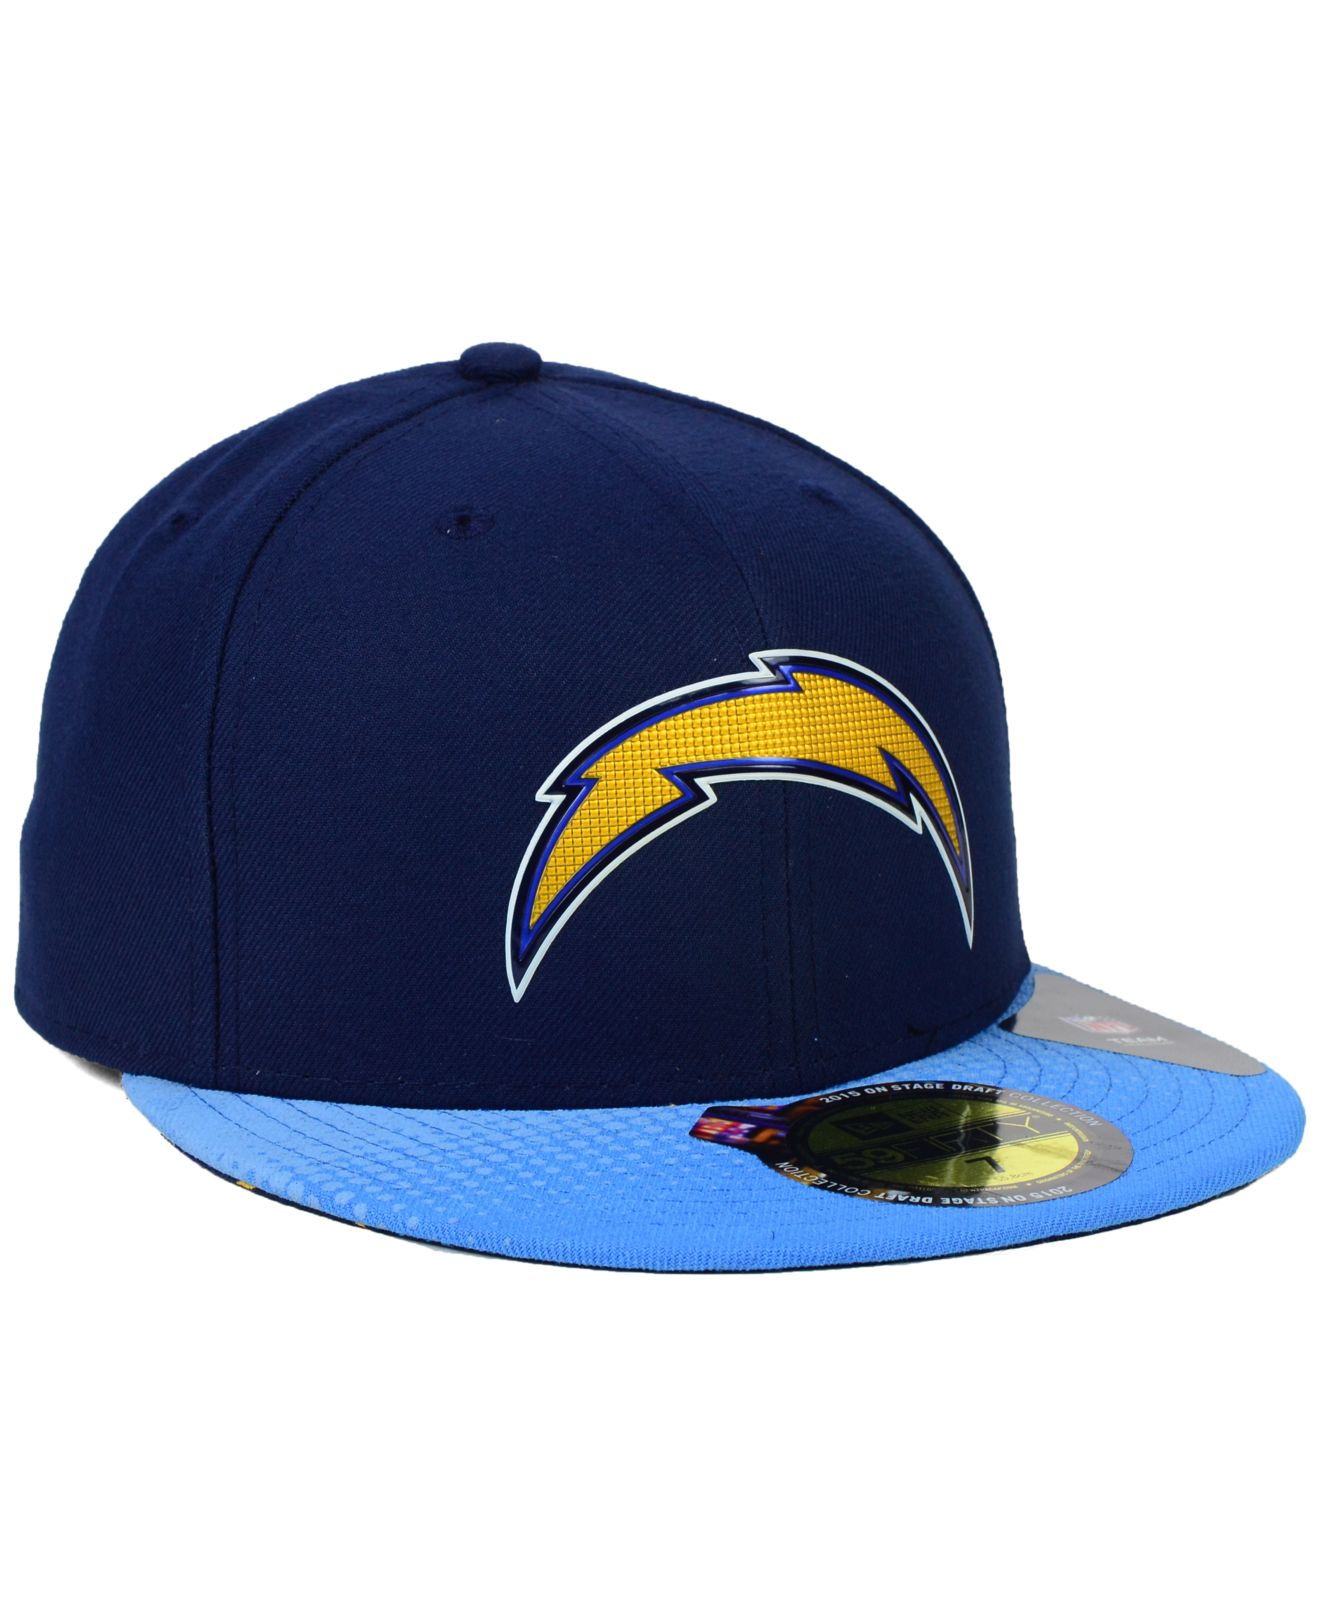 b755dbe6168 Lyst - Ktz San Diego Chargers 2015 Nfl Draft 59fifty Cap in Blue for Men